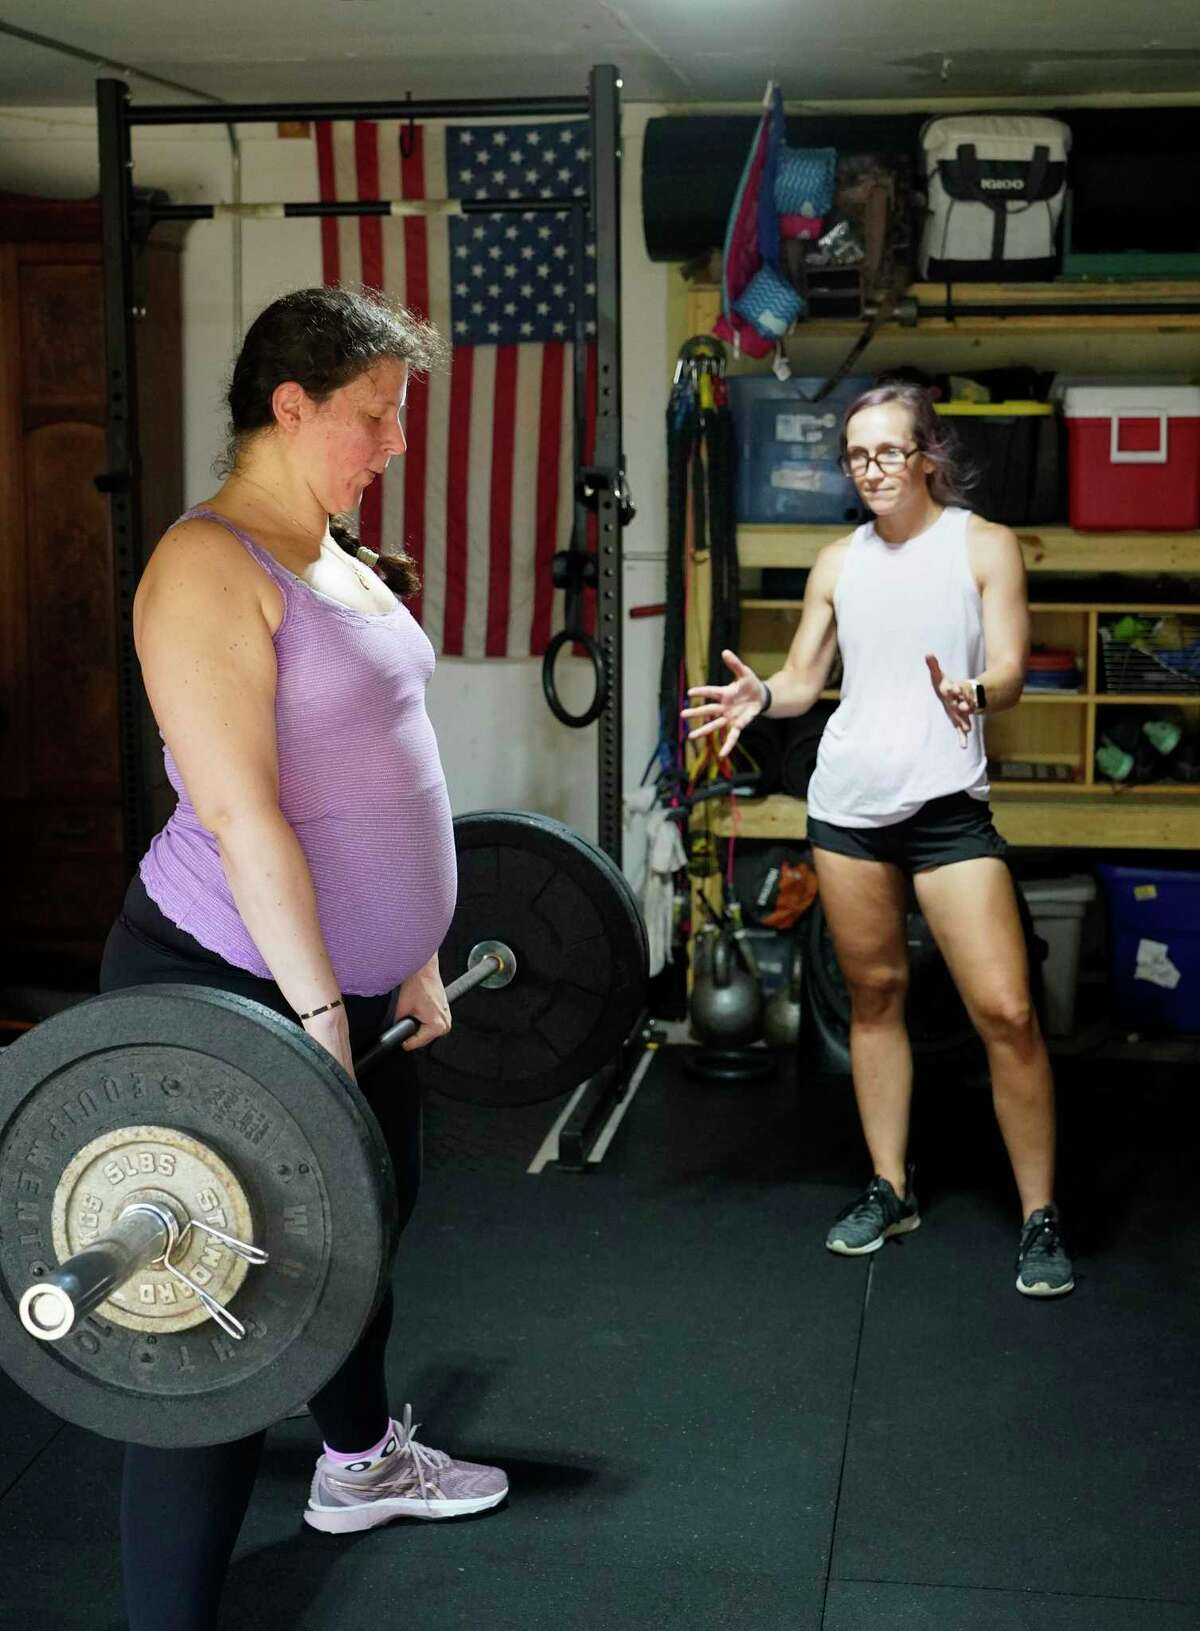 Jeni Masi, left, works out with Cat Monzon, who is certified as a prenatal and postpartum trainer, Saturday, July 17, 2021 in Houston. Jeni knew she needed extra help from someone who knew how to modify workouts for pregnancy.